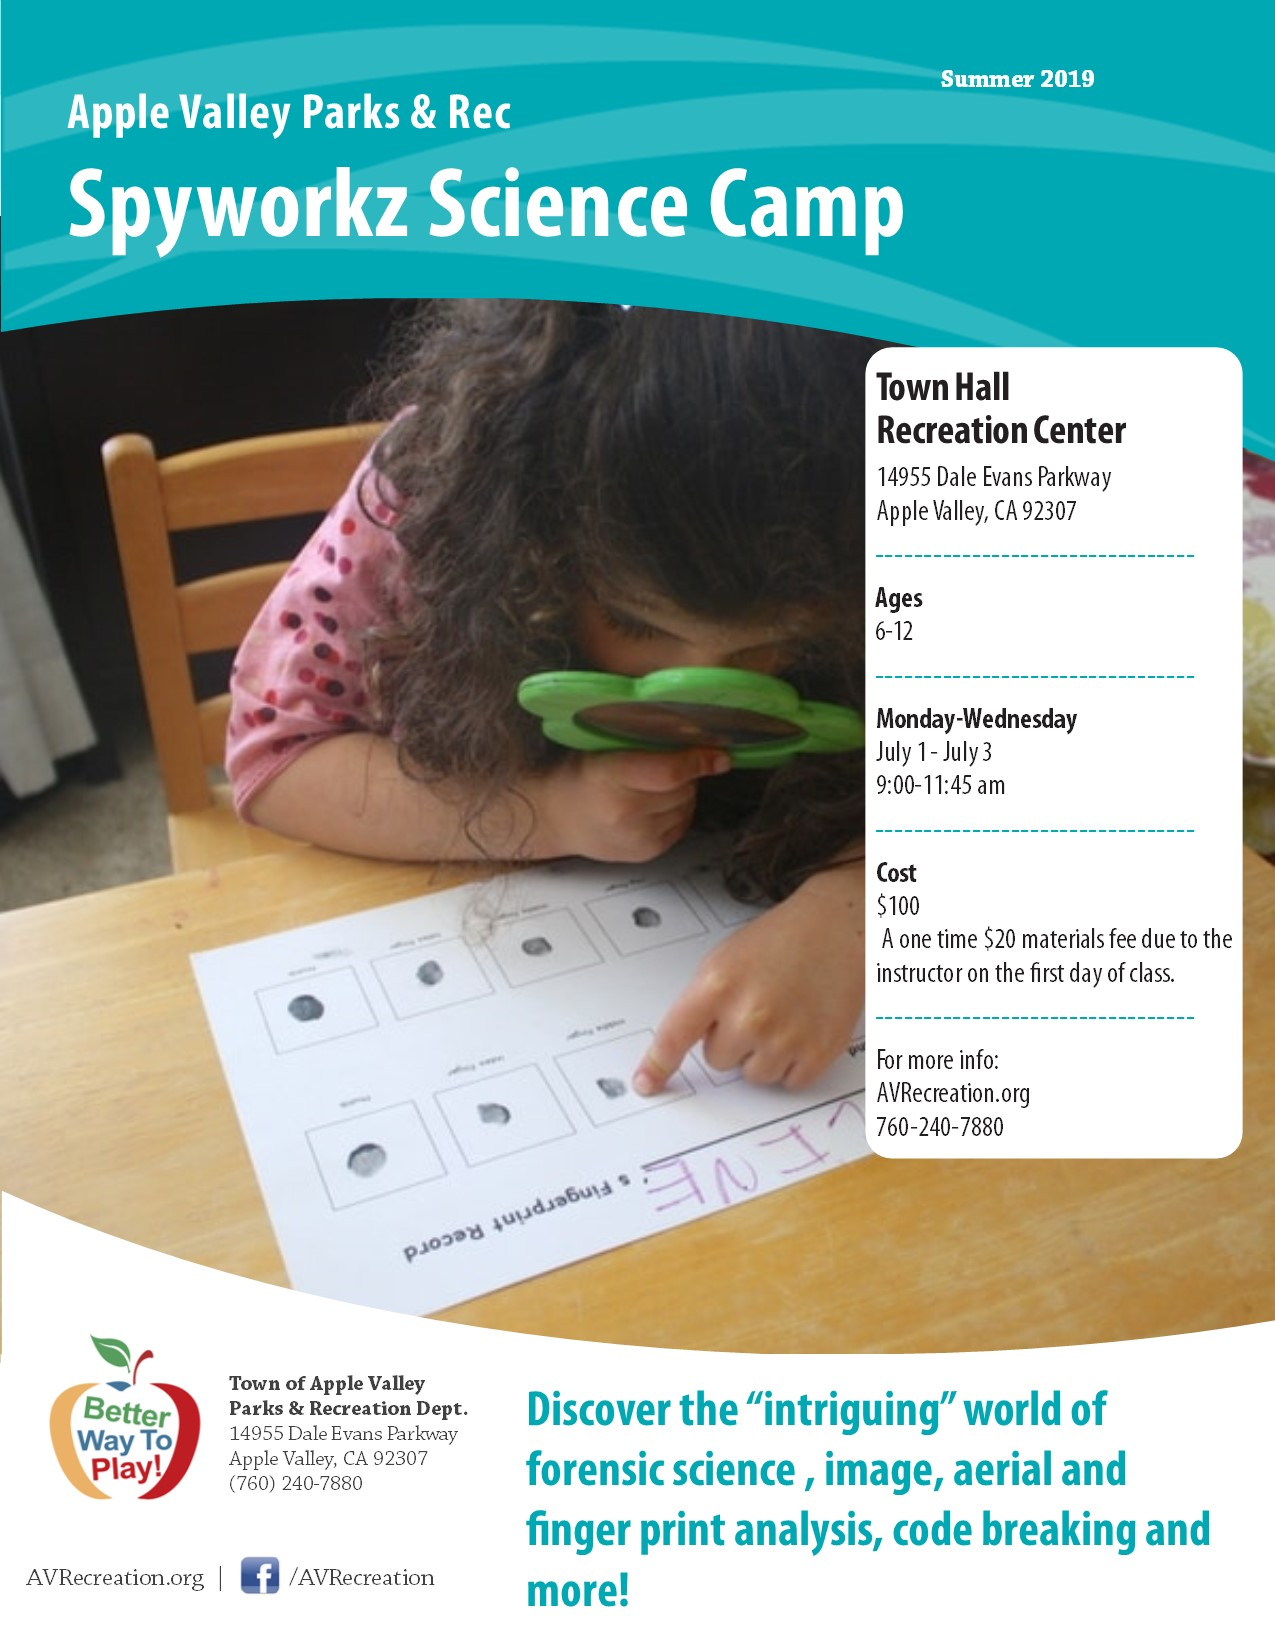 Spyworkz Science Camp